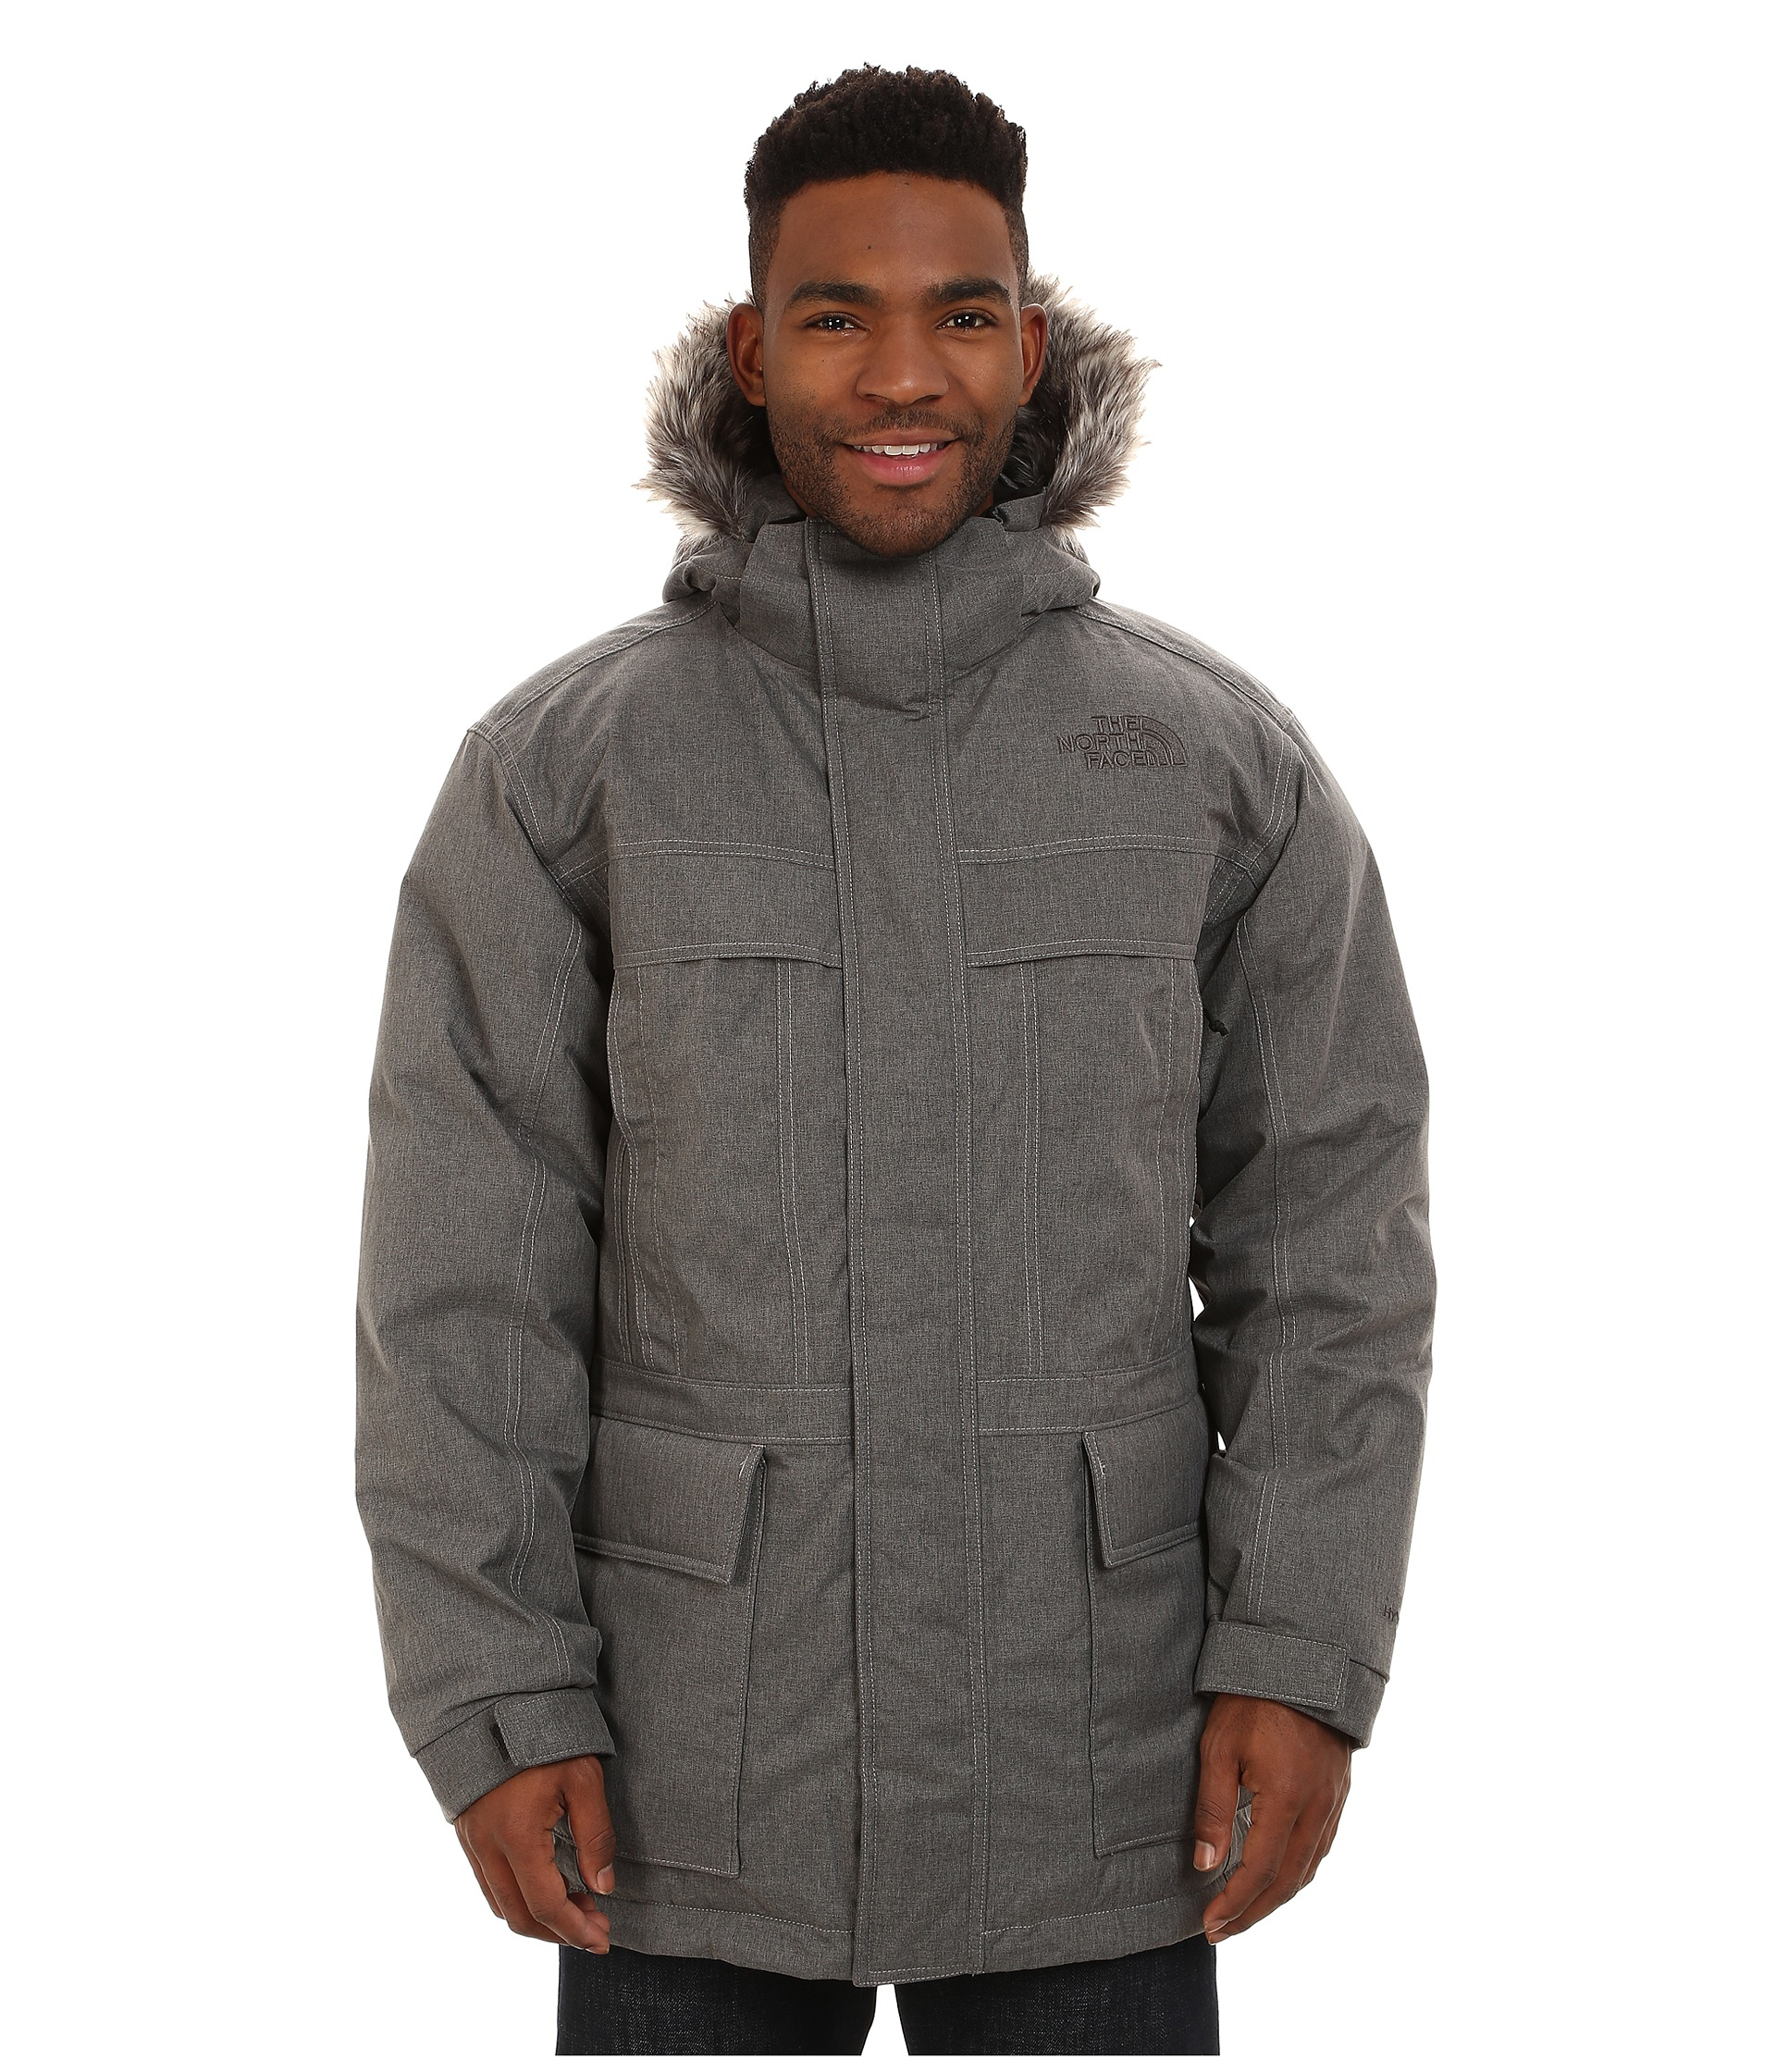 lyst the north face mcmurdo parka ii in gray for men. Black Bedroom Furniture Sets. Home Design Ideas